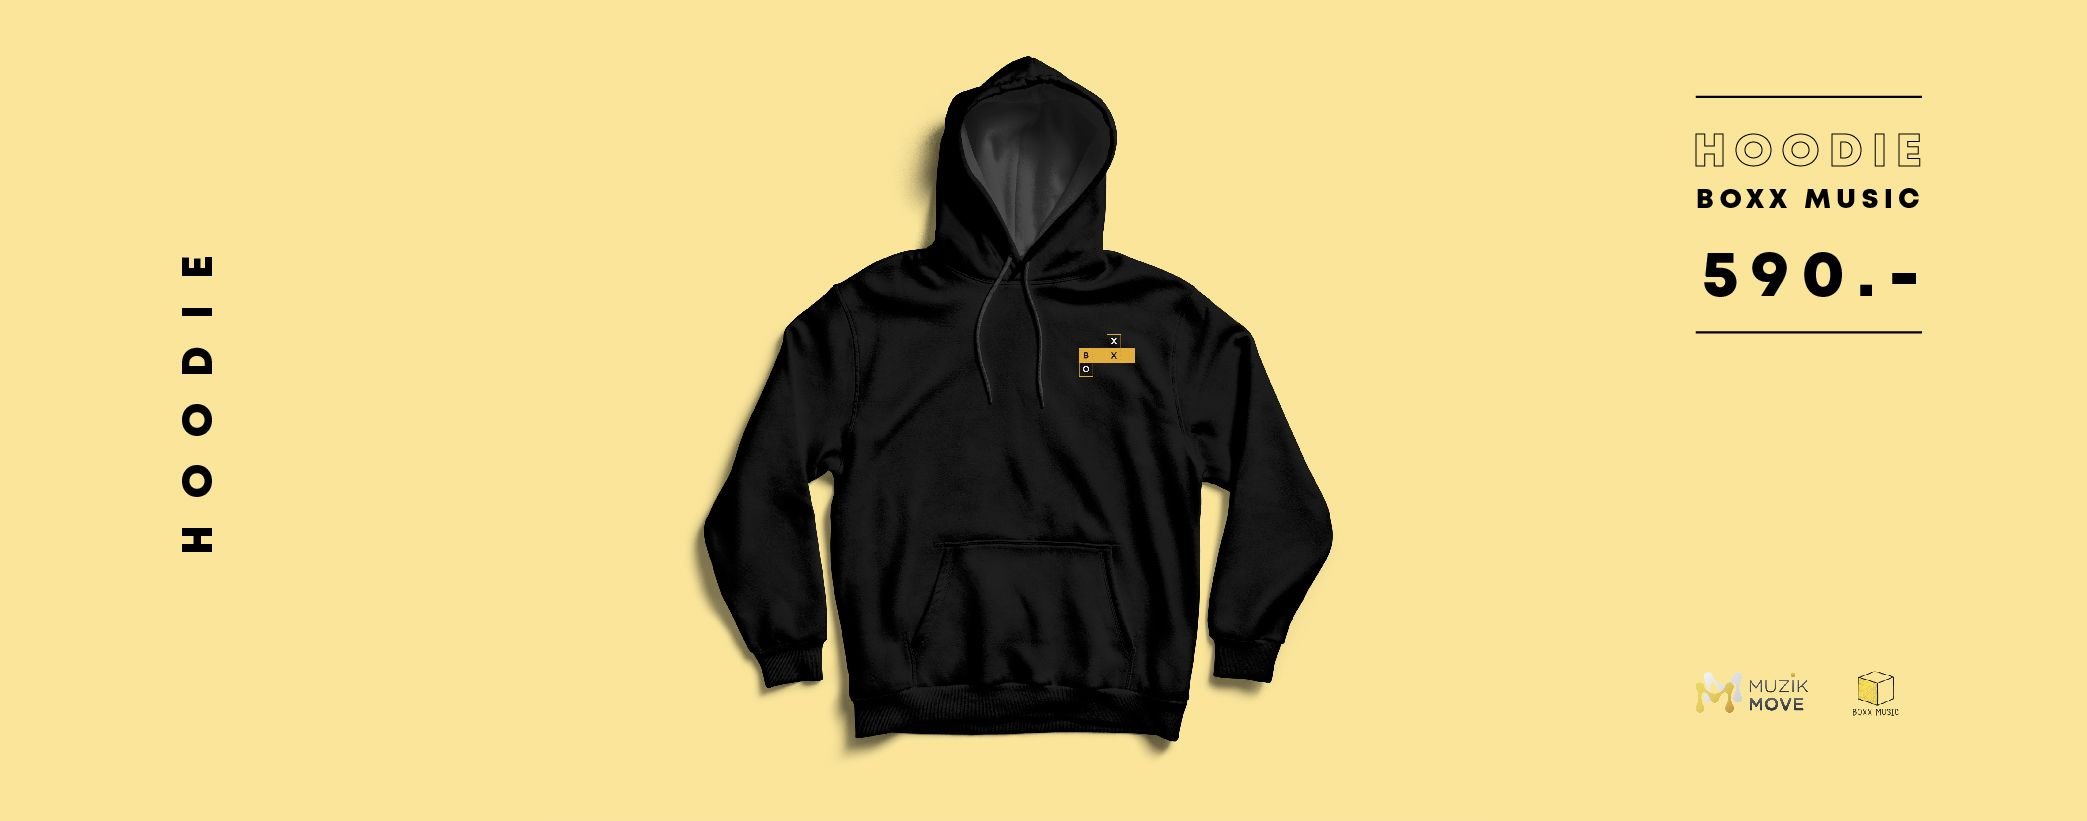 HOODIE BOXX NEW COLLECTION 2019